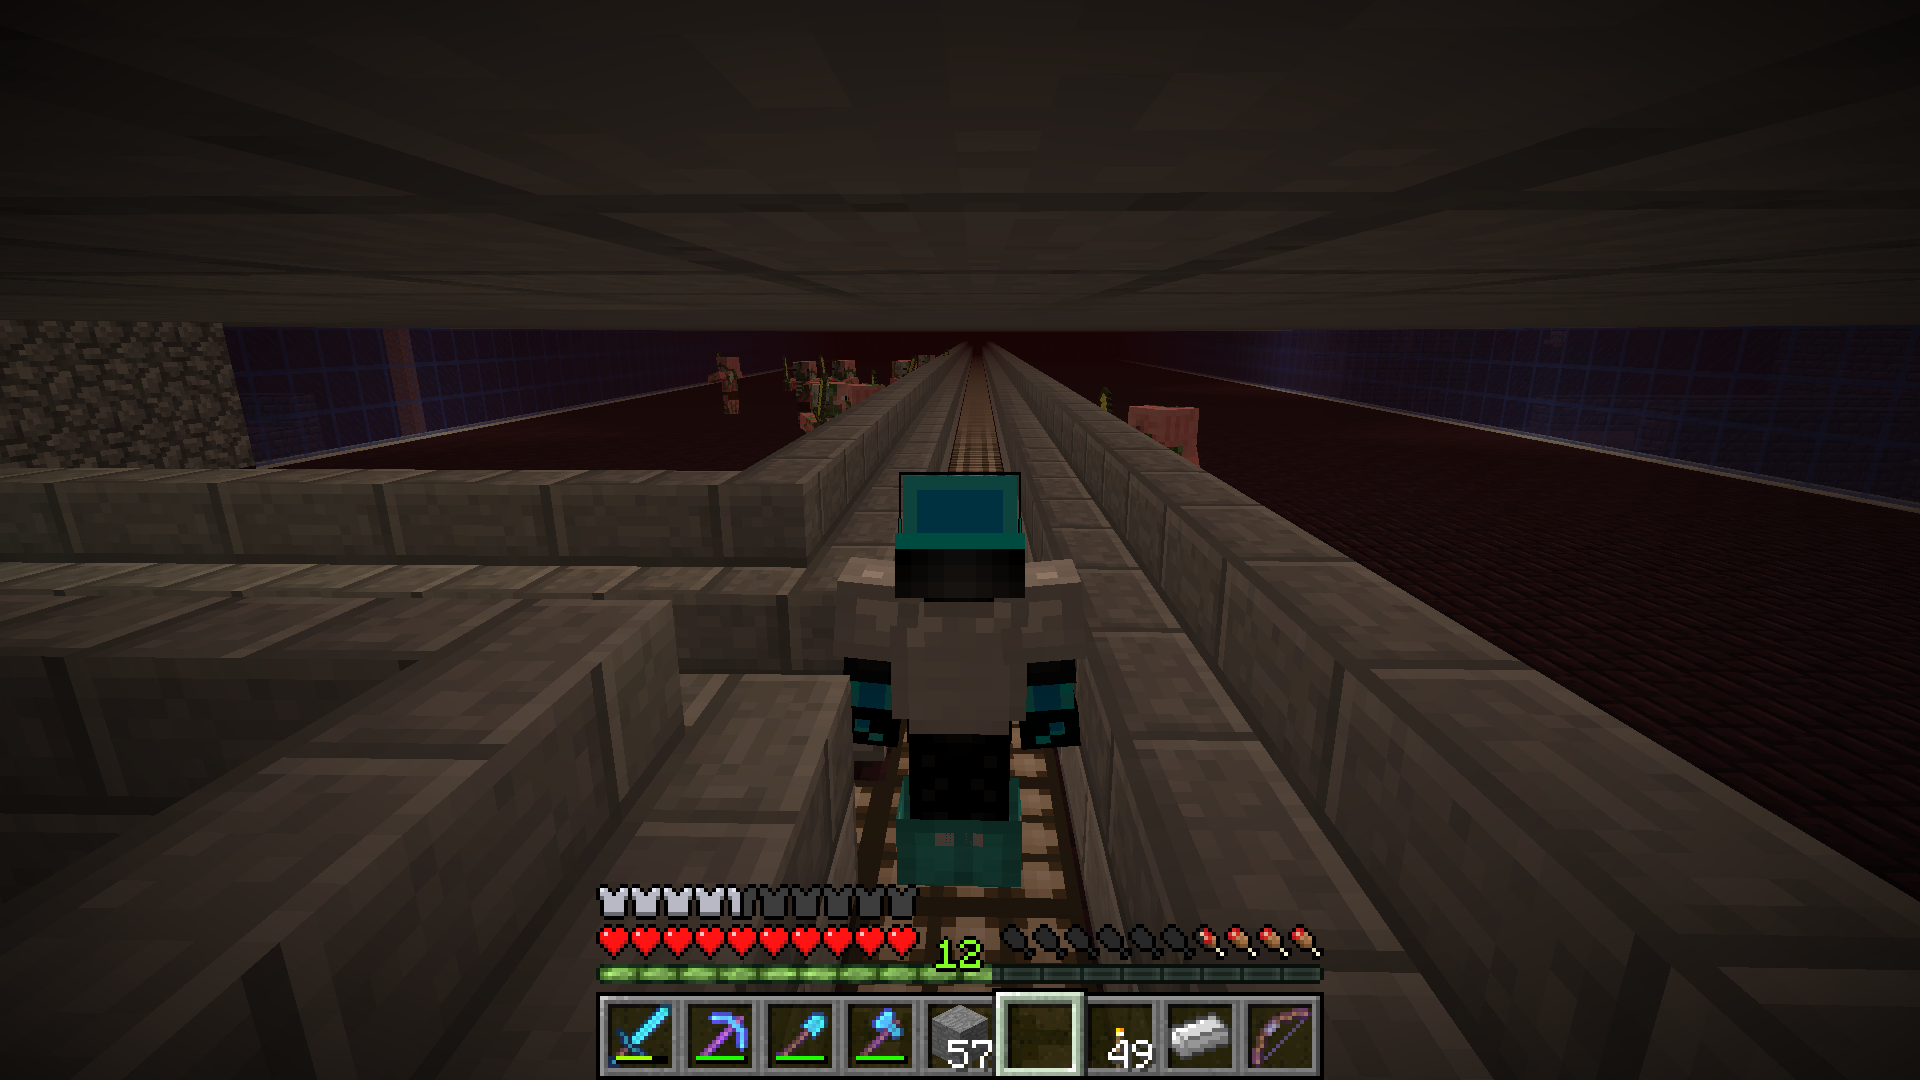 MC-133992] Nether fortress not spawning wither skeletons or